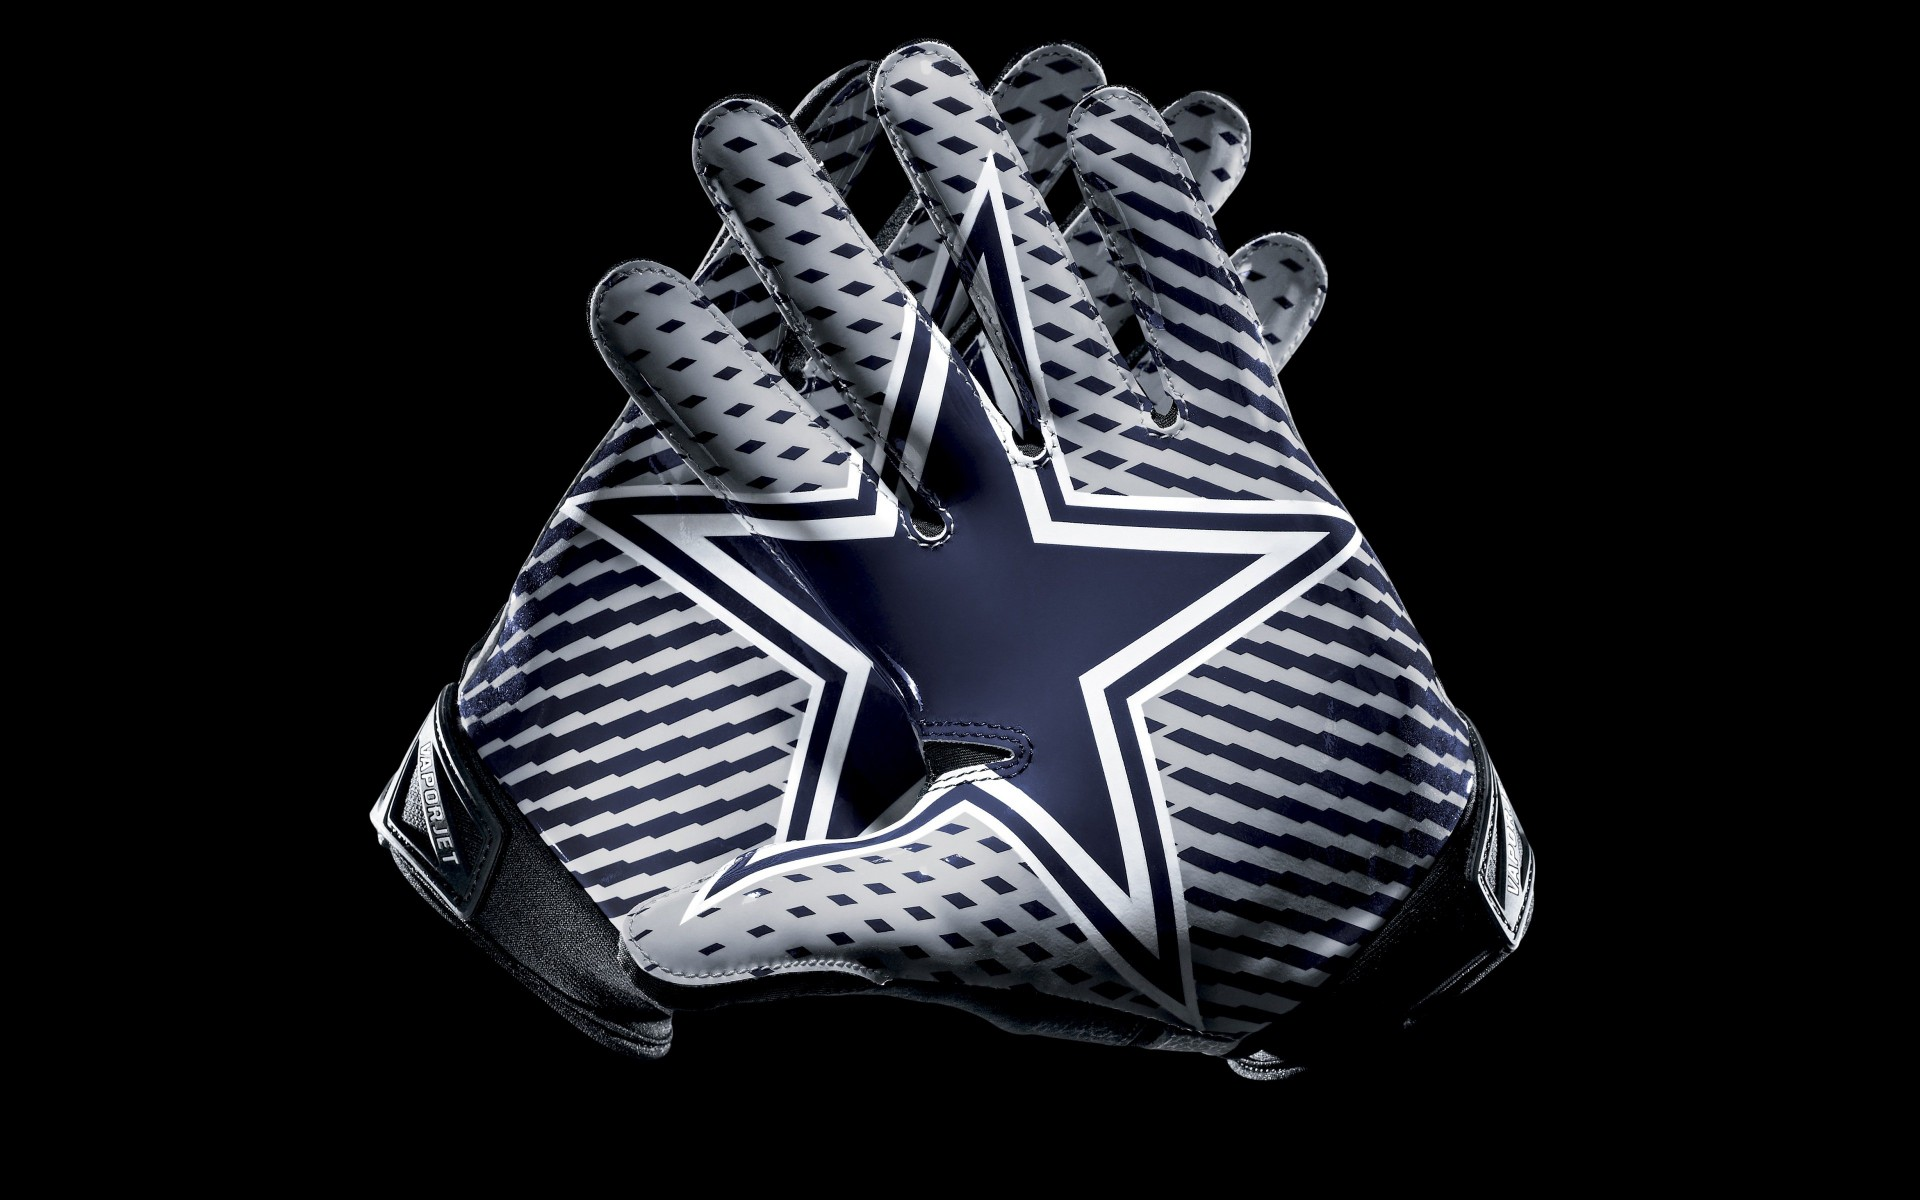 Dallas Cowboys Gloves Wallpaper for Desktop 1920x1200